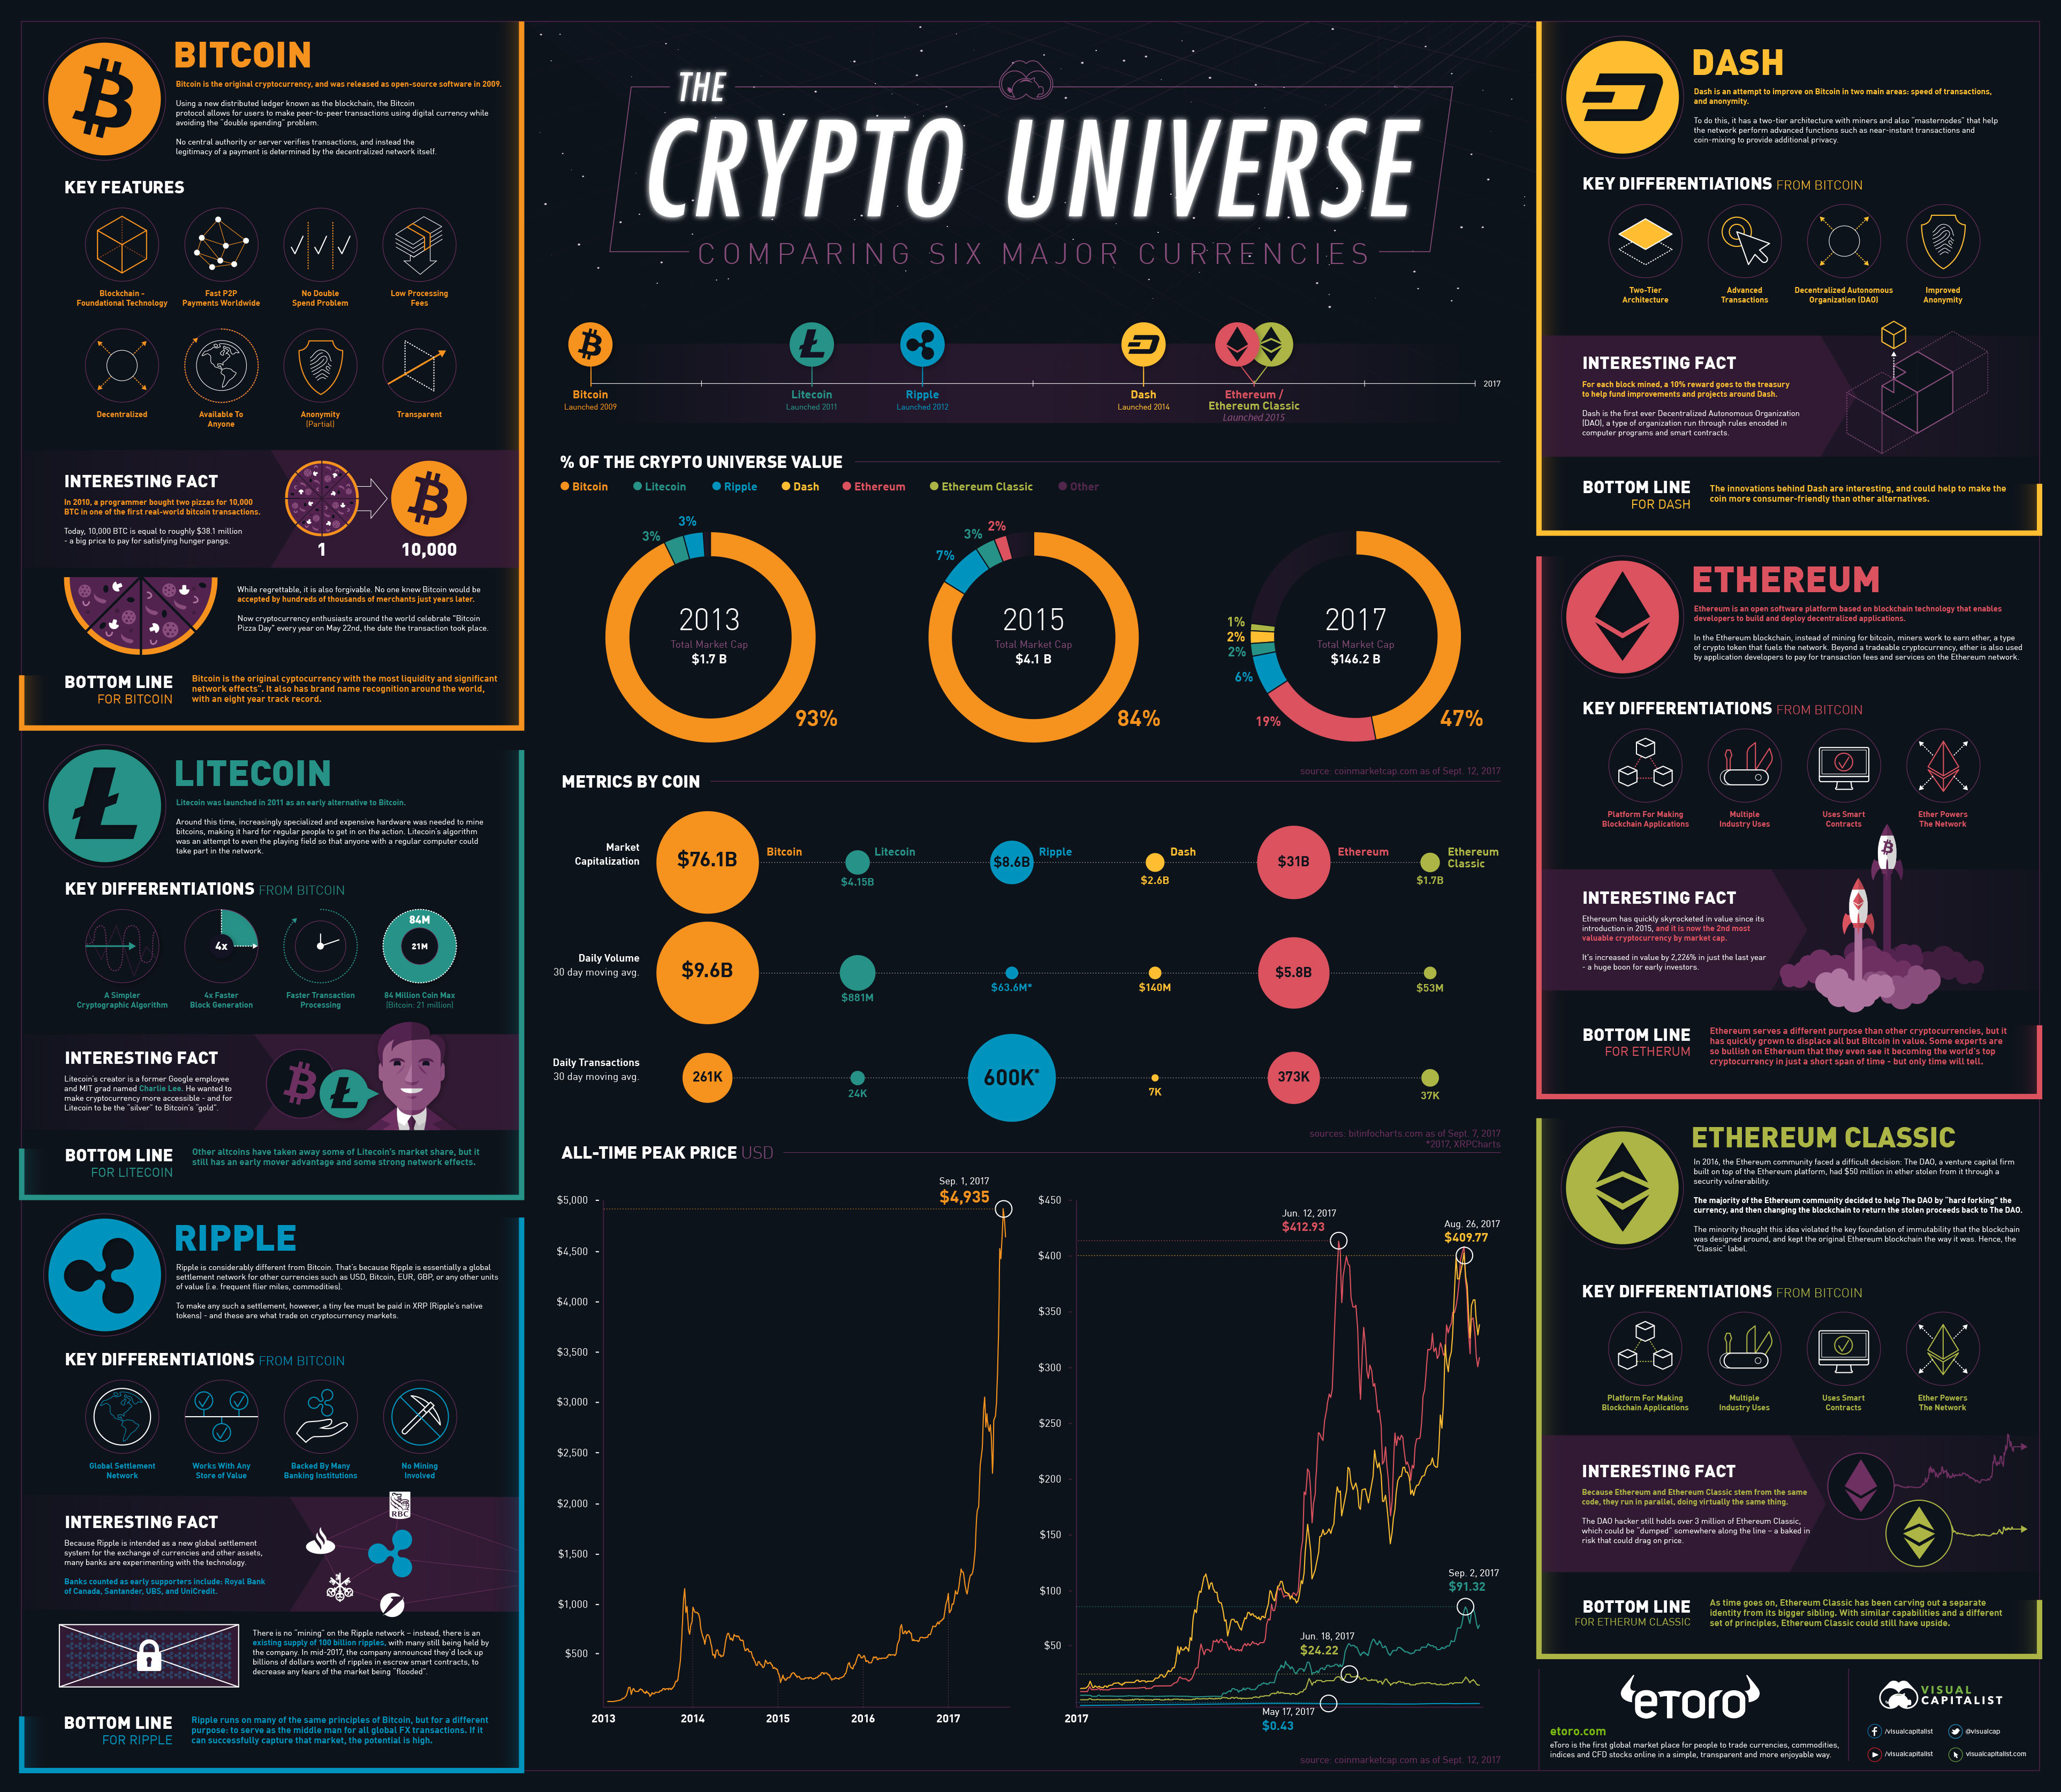 Comparing Bitcoin, Ethereum, and Other Cryptos